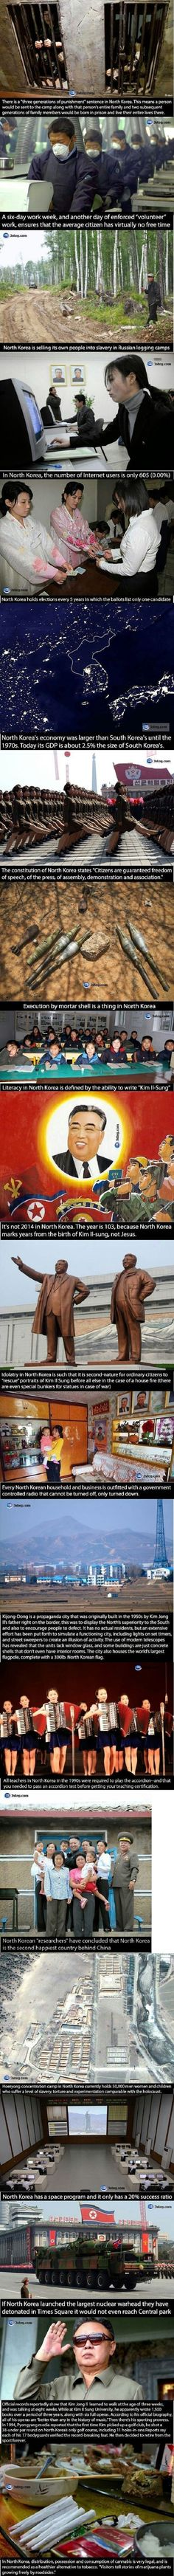 Silly North Korea